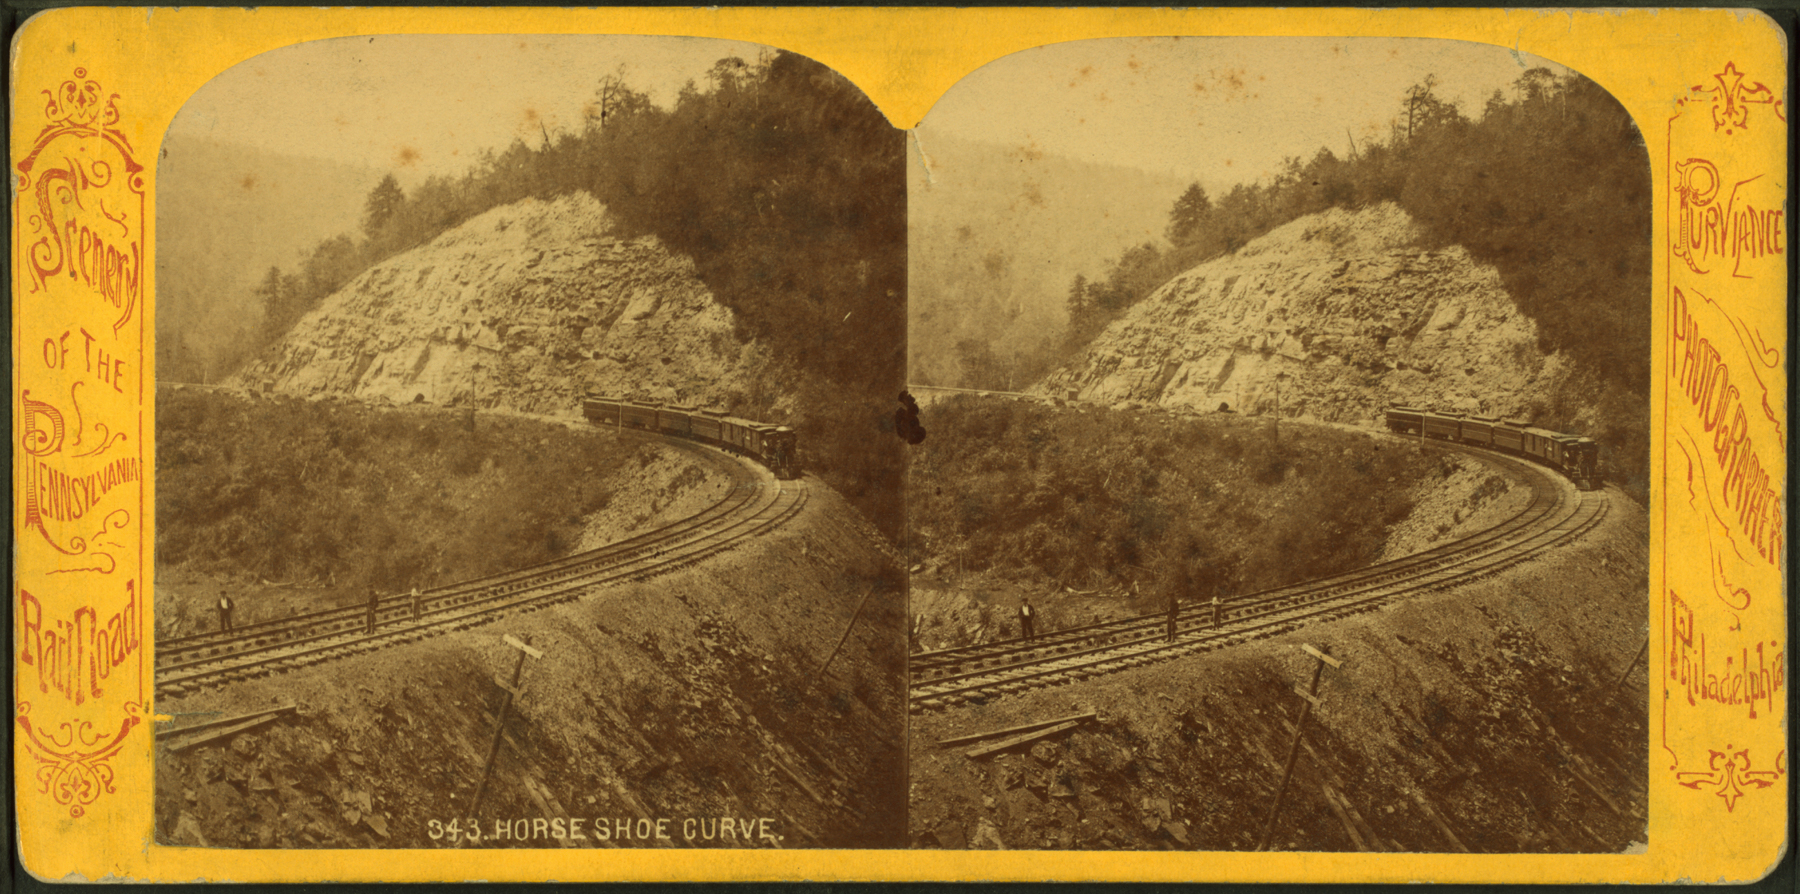 Horseshoe Curve, William T Purviance, Circa late 1860's. Collection of the New York Public Library.